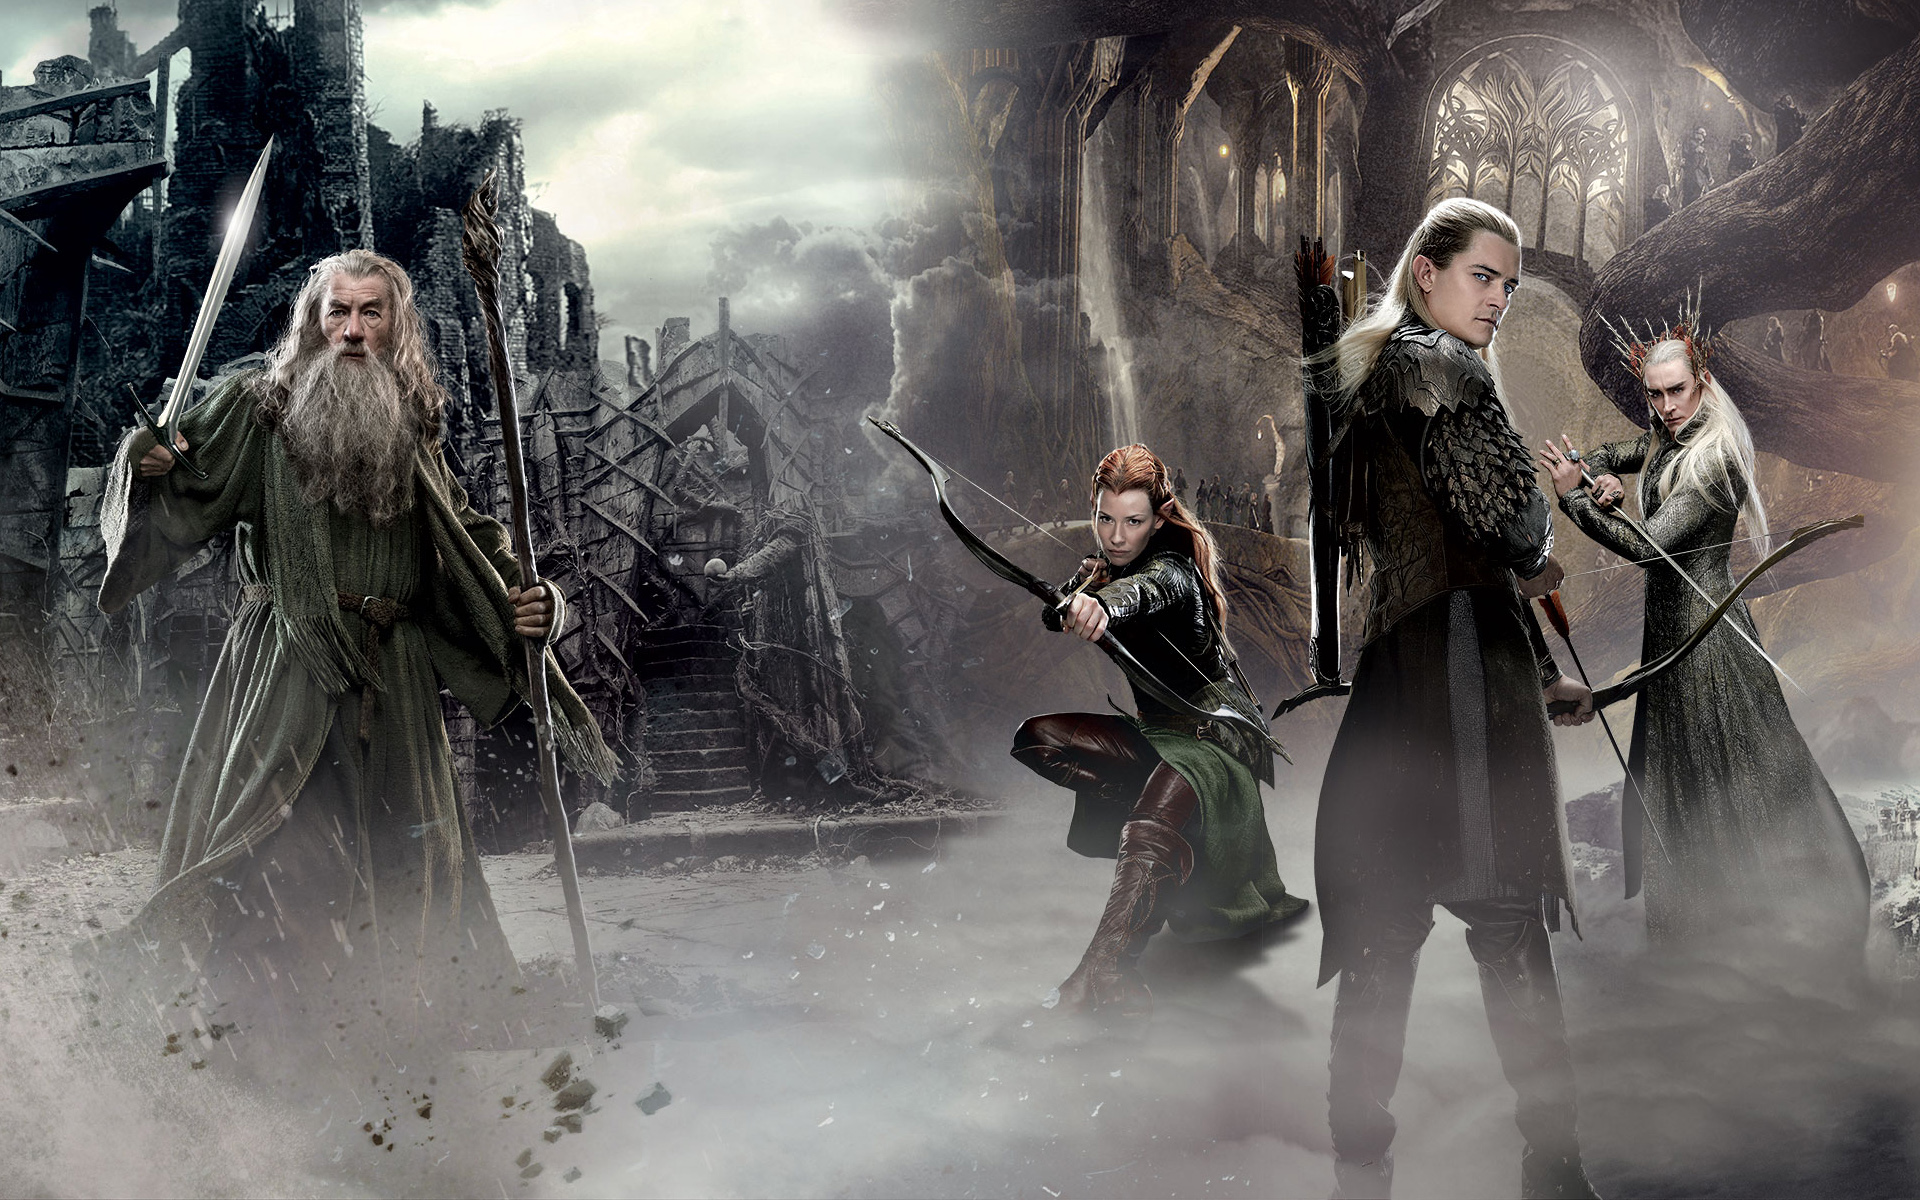 gandalf Legolas Tauriel Middle Earth poster film hd wallpaper 1920x1200